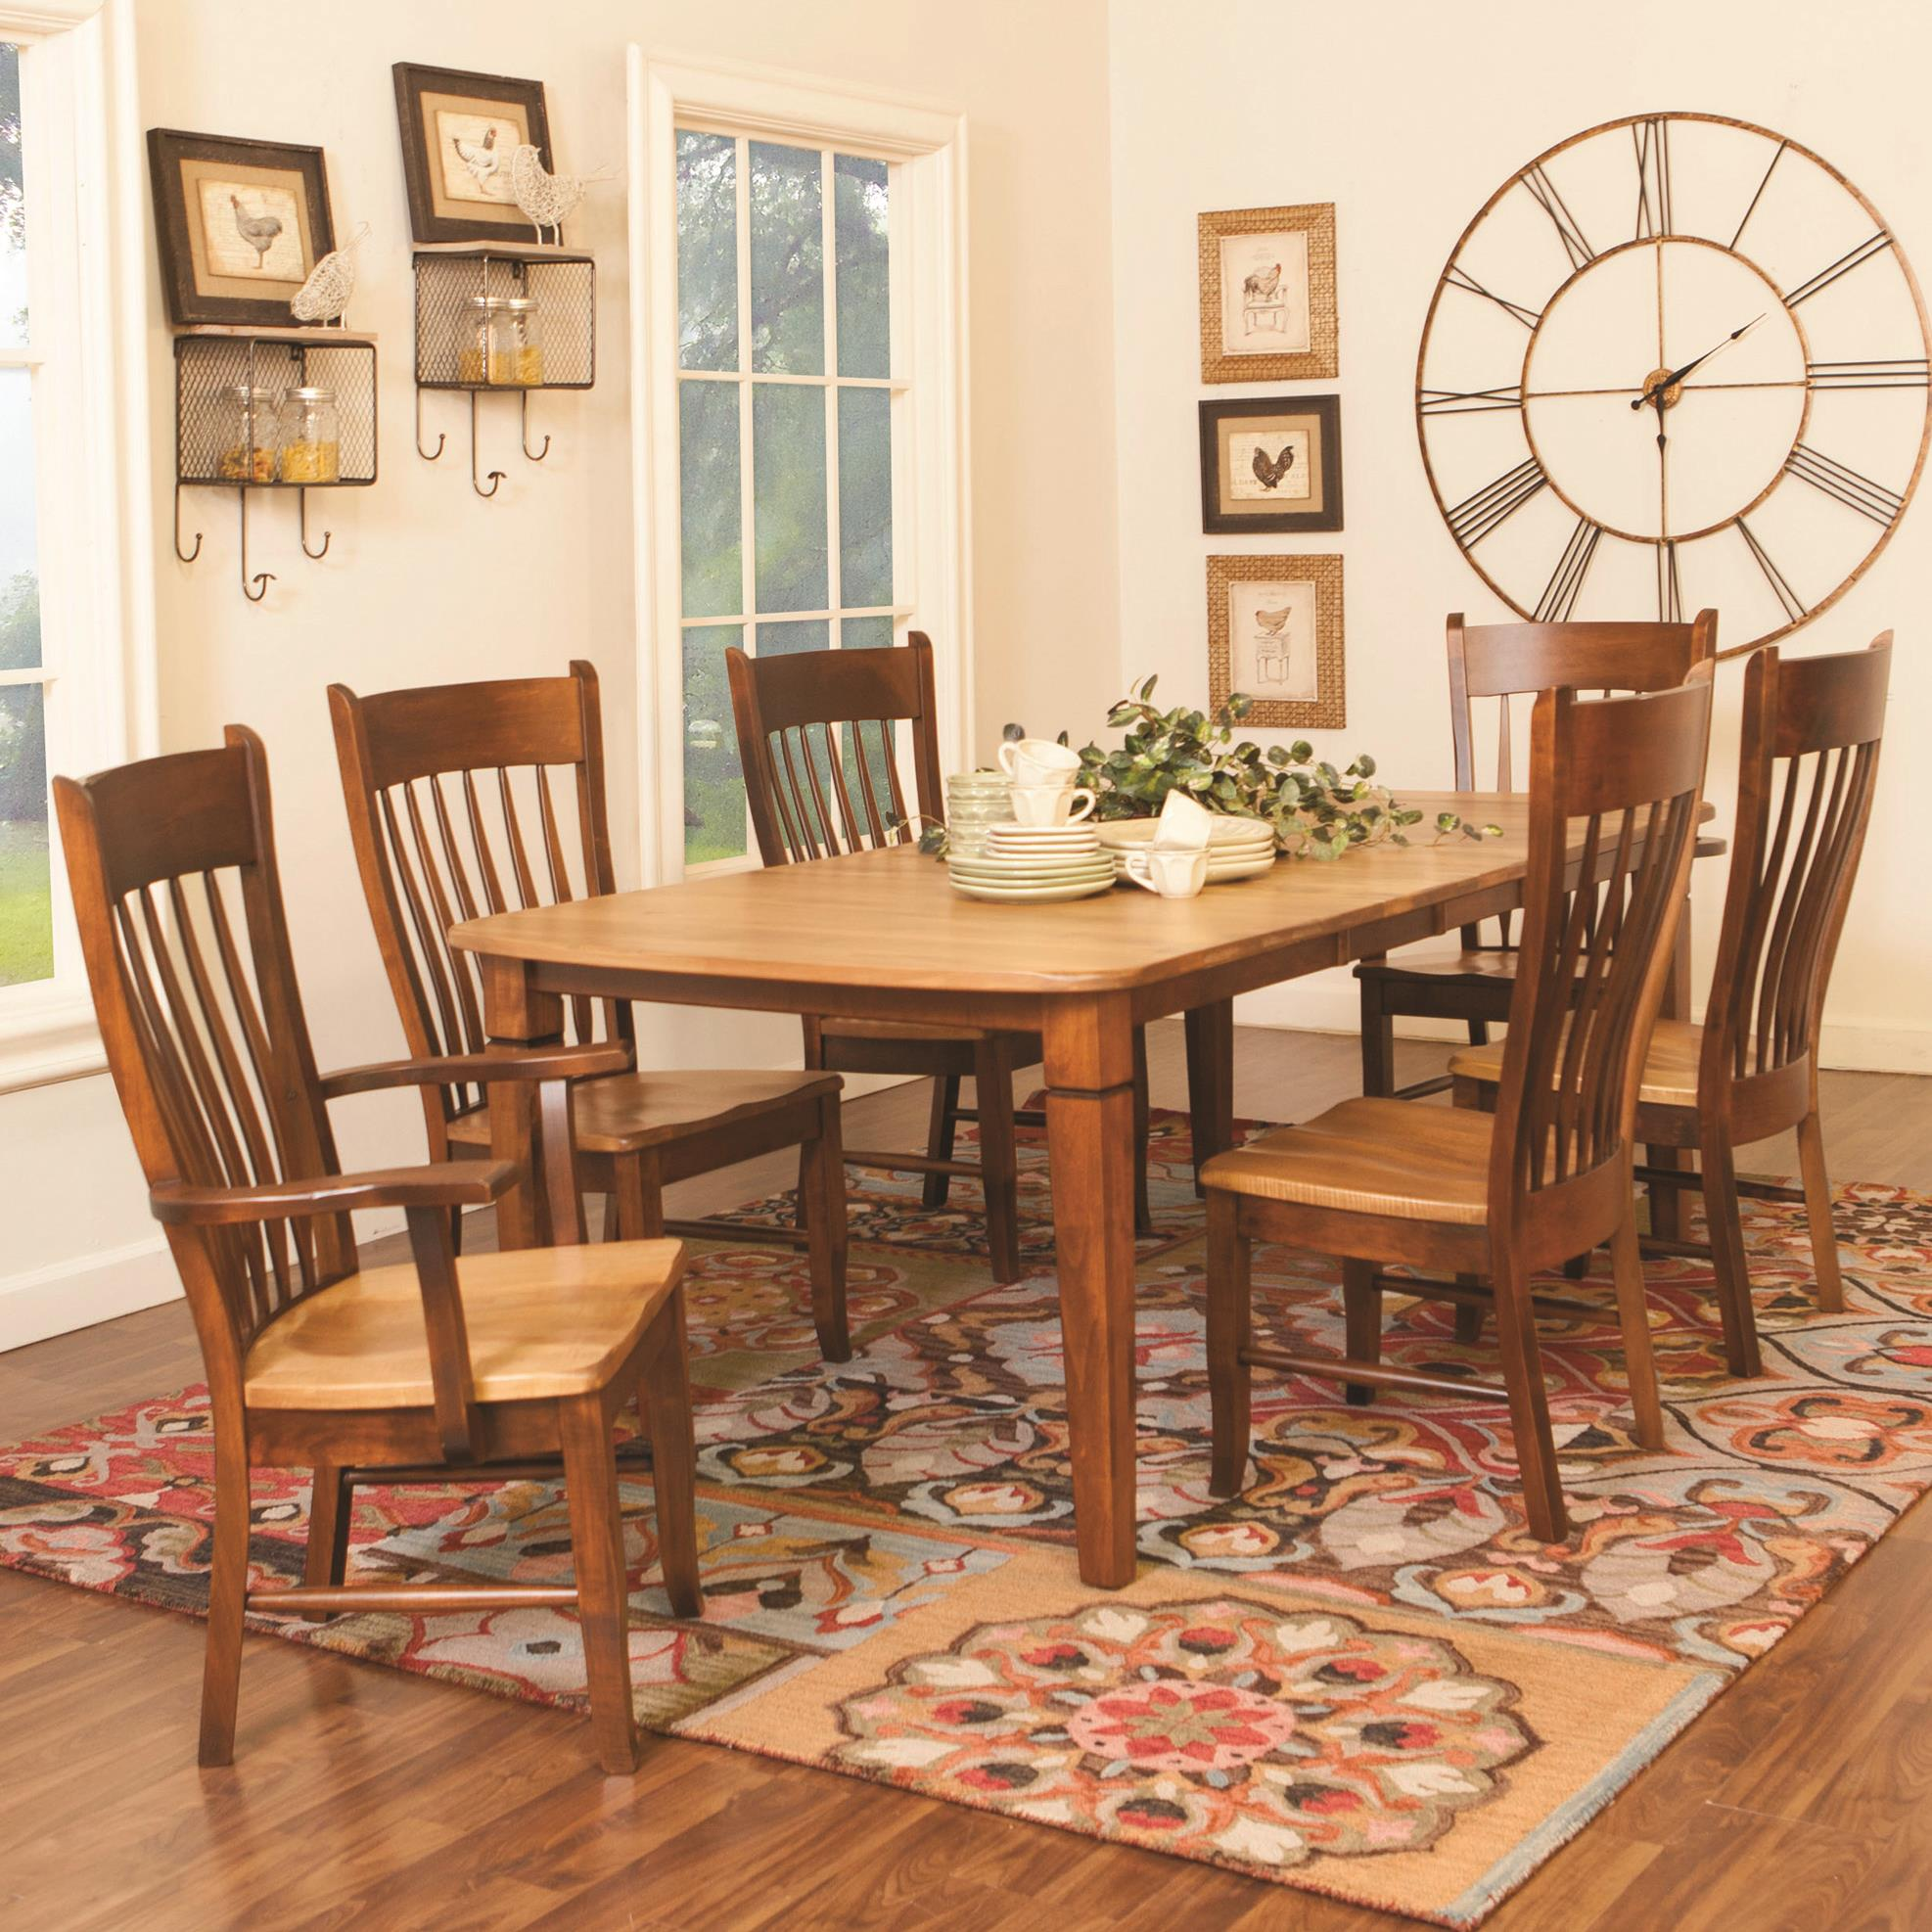 Daniel 39 s amish tables millsdale rectangular dining table for John v schultz dining room table